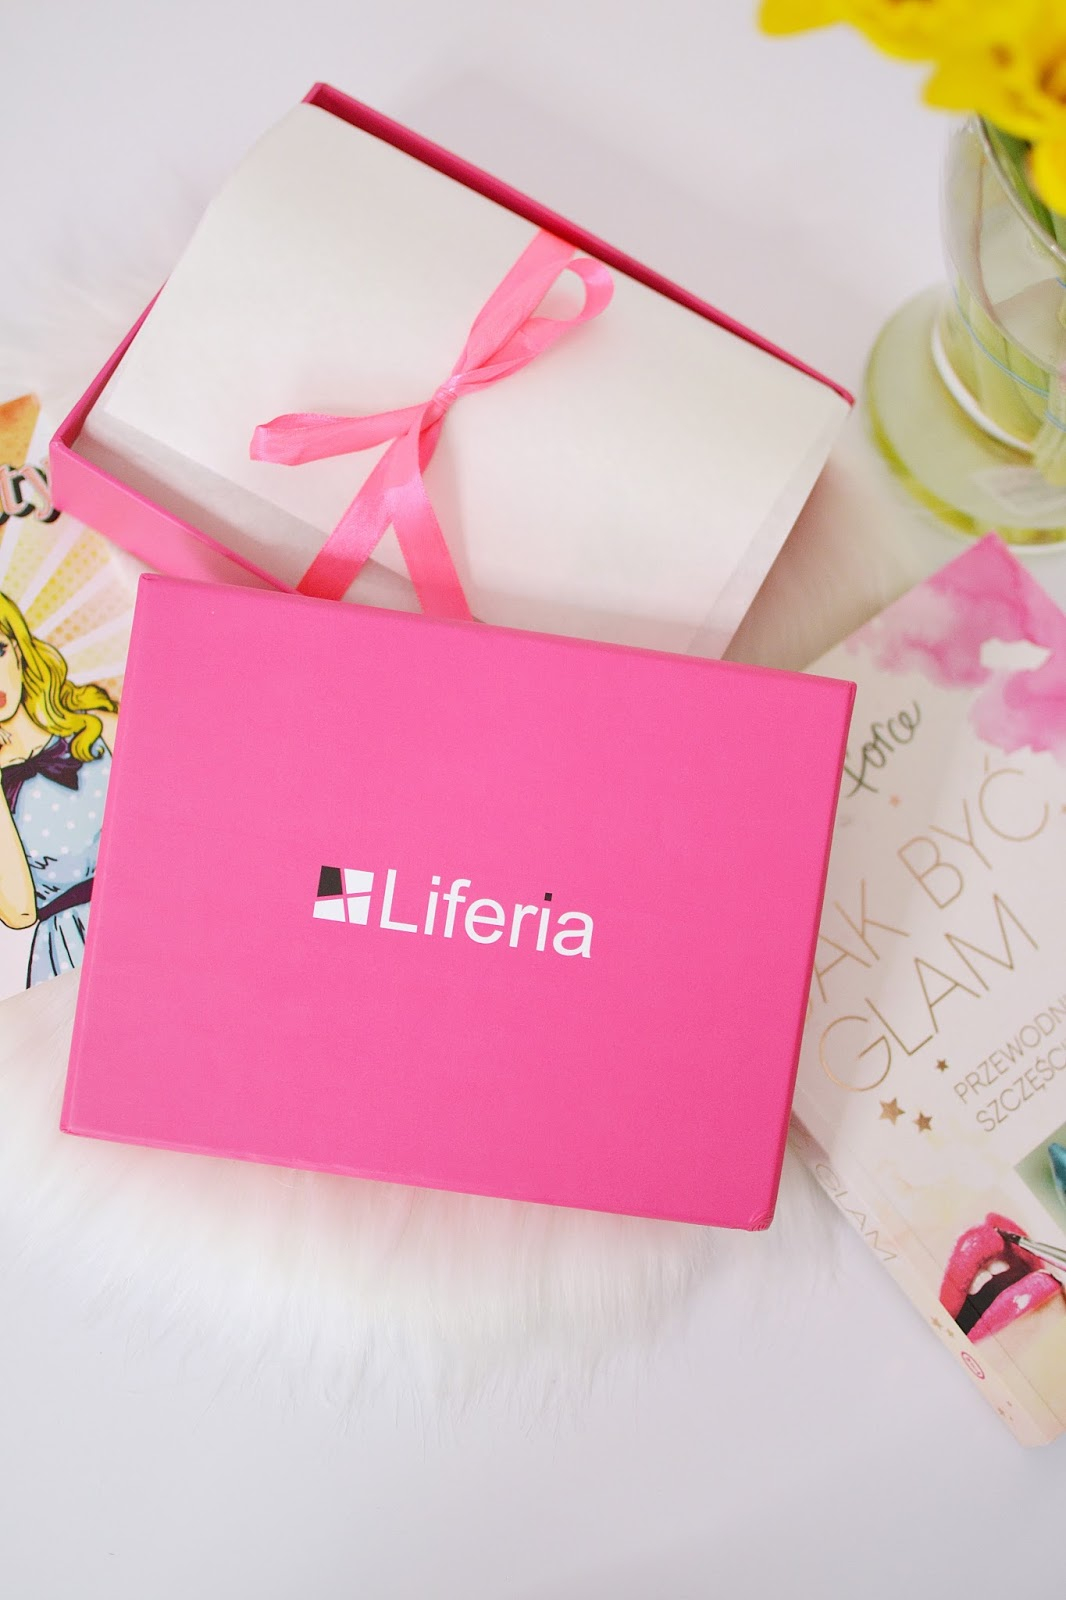 LIFERIA BOX